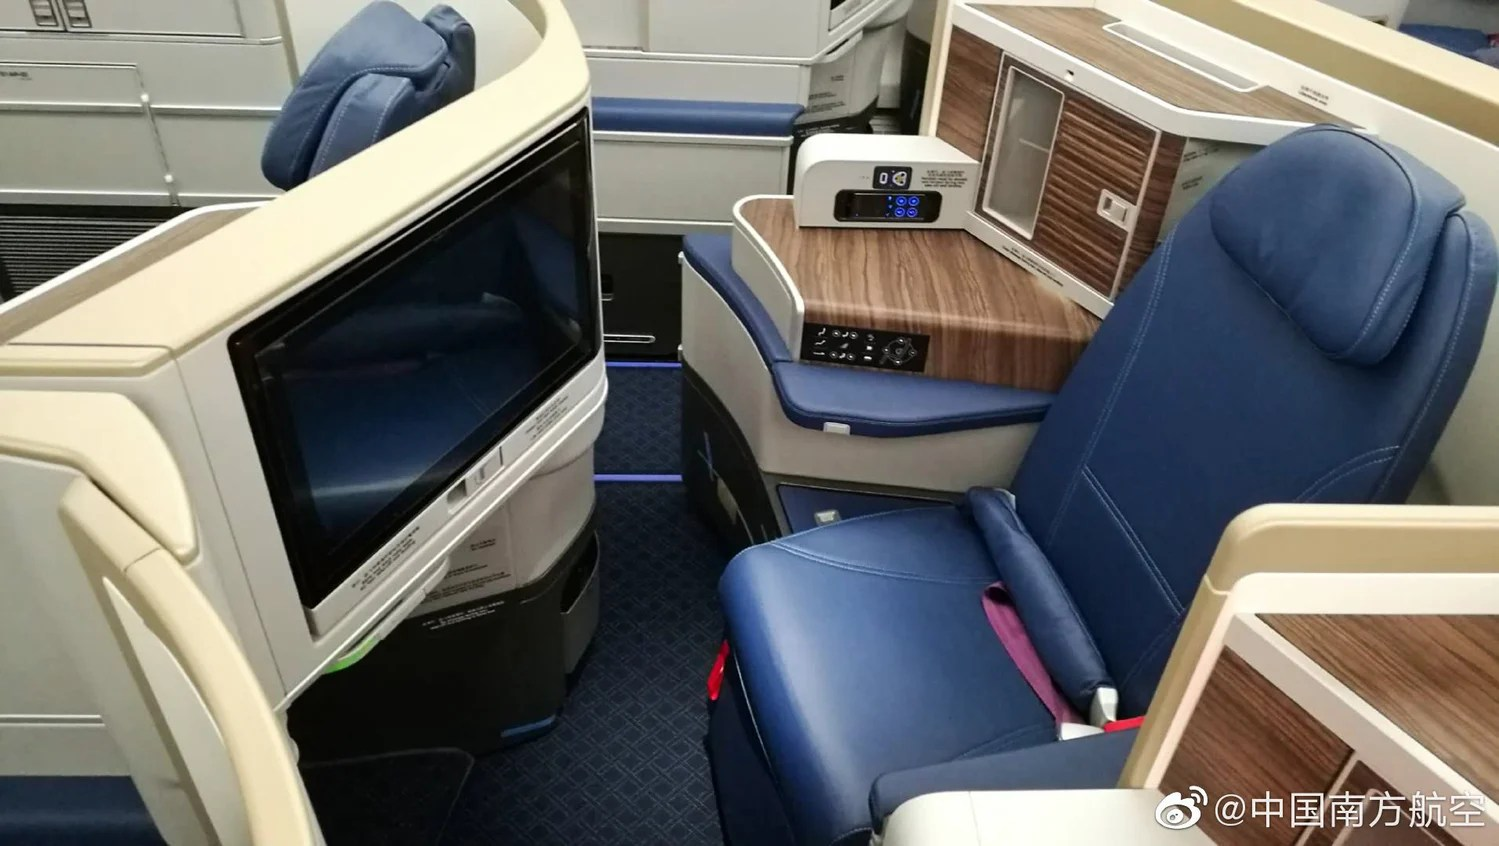 China Southern's new Airbus A350 product is quite competitive but still falls short compared to China Eastern's A350 business class seat. (Image via Chine Eastern on Weibo)